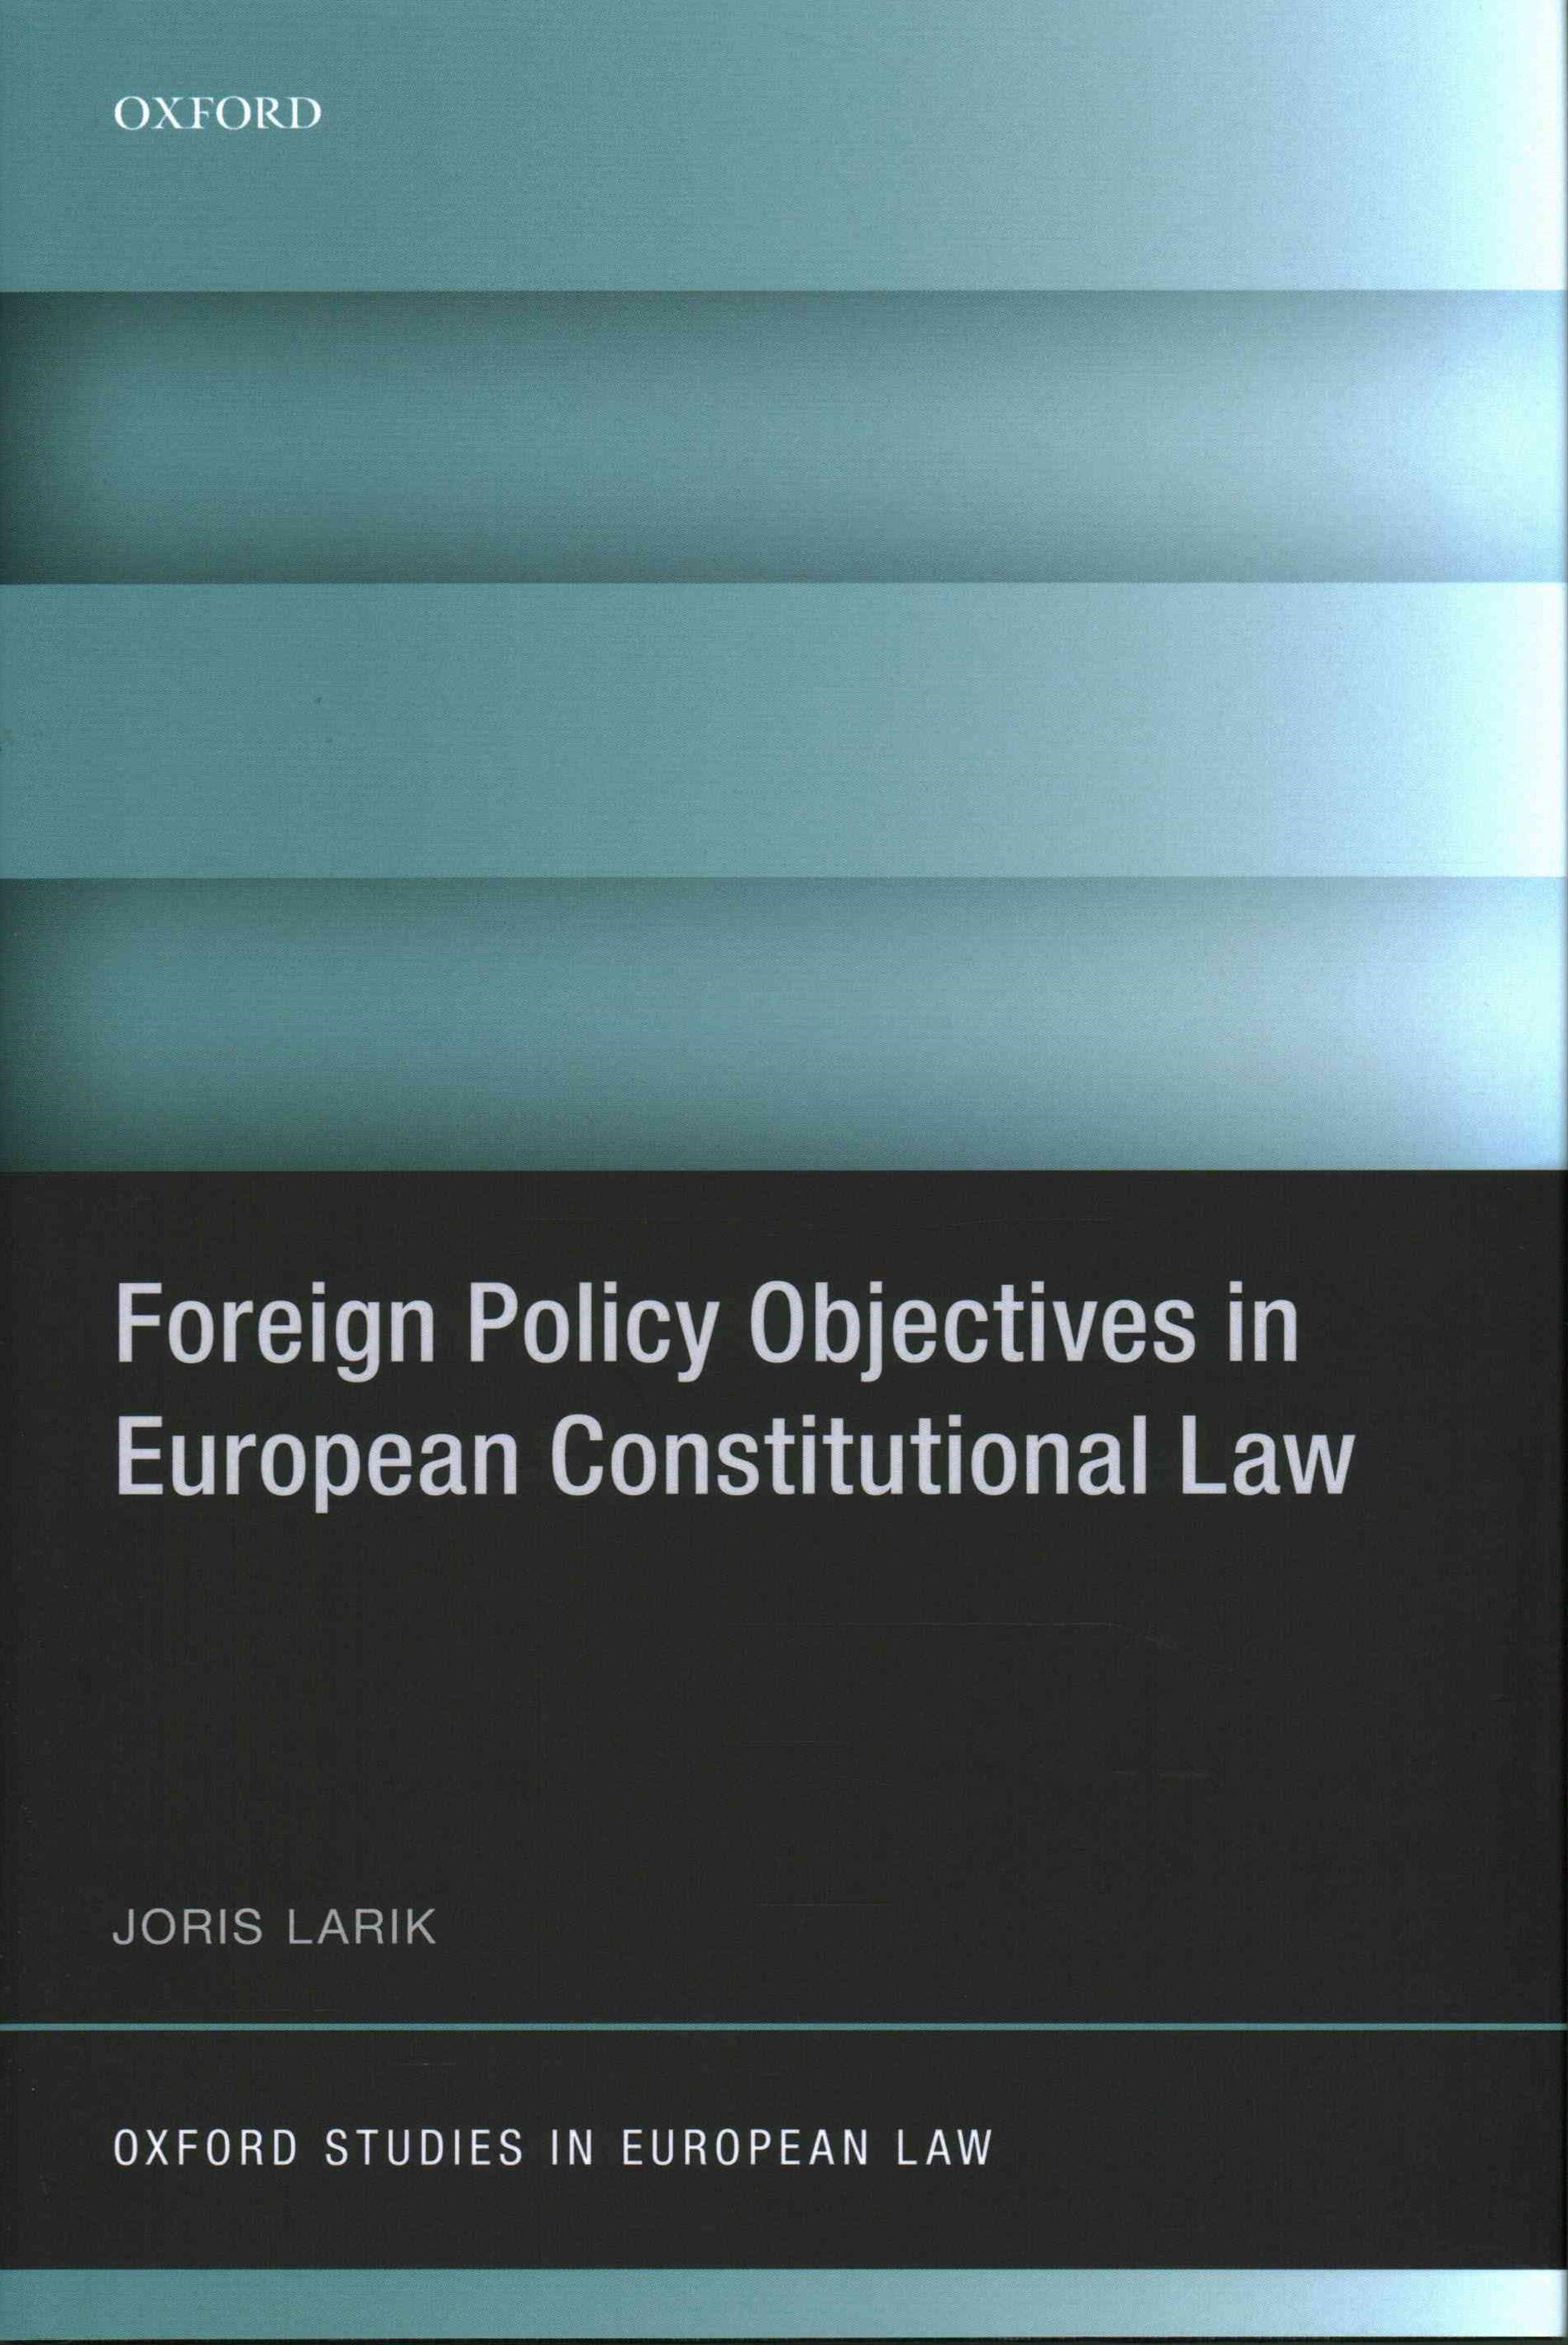 Foreign Policy Objectives in European Constitutional Law